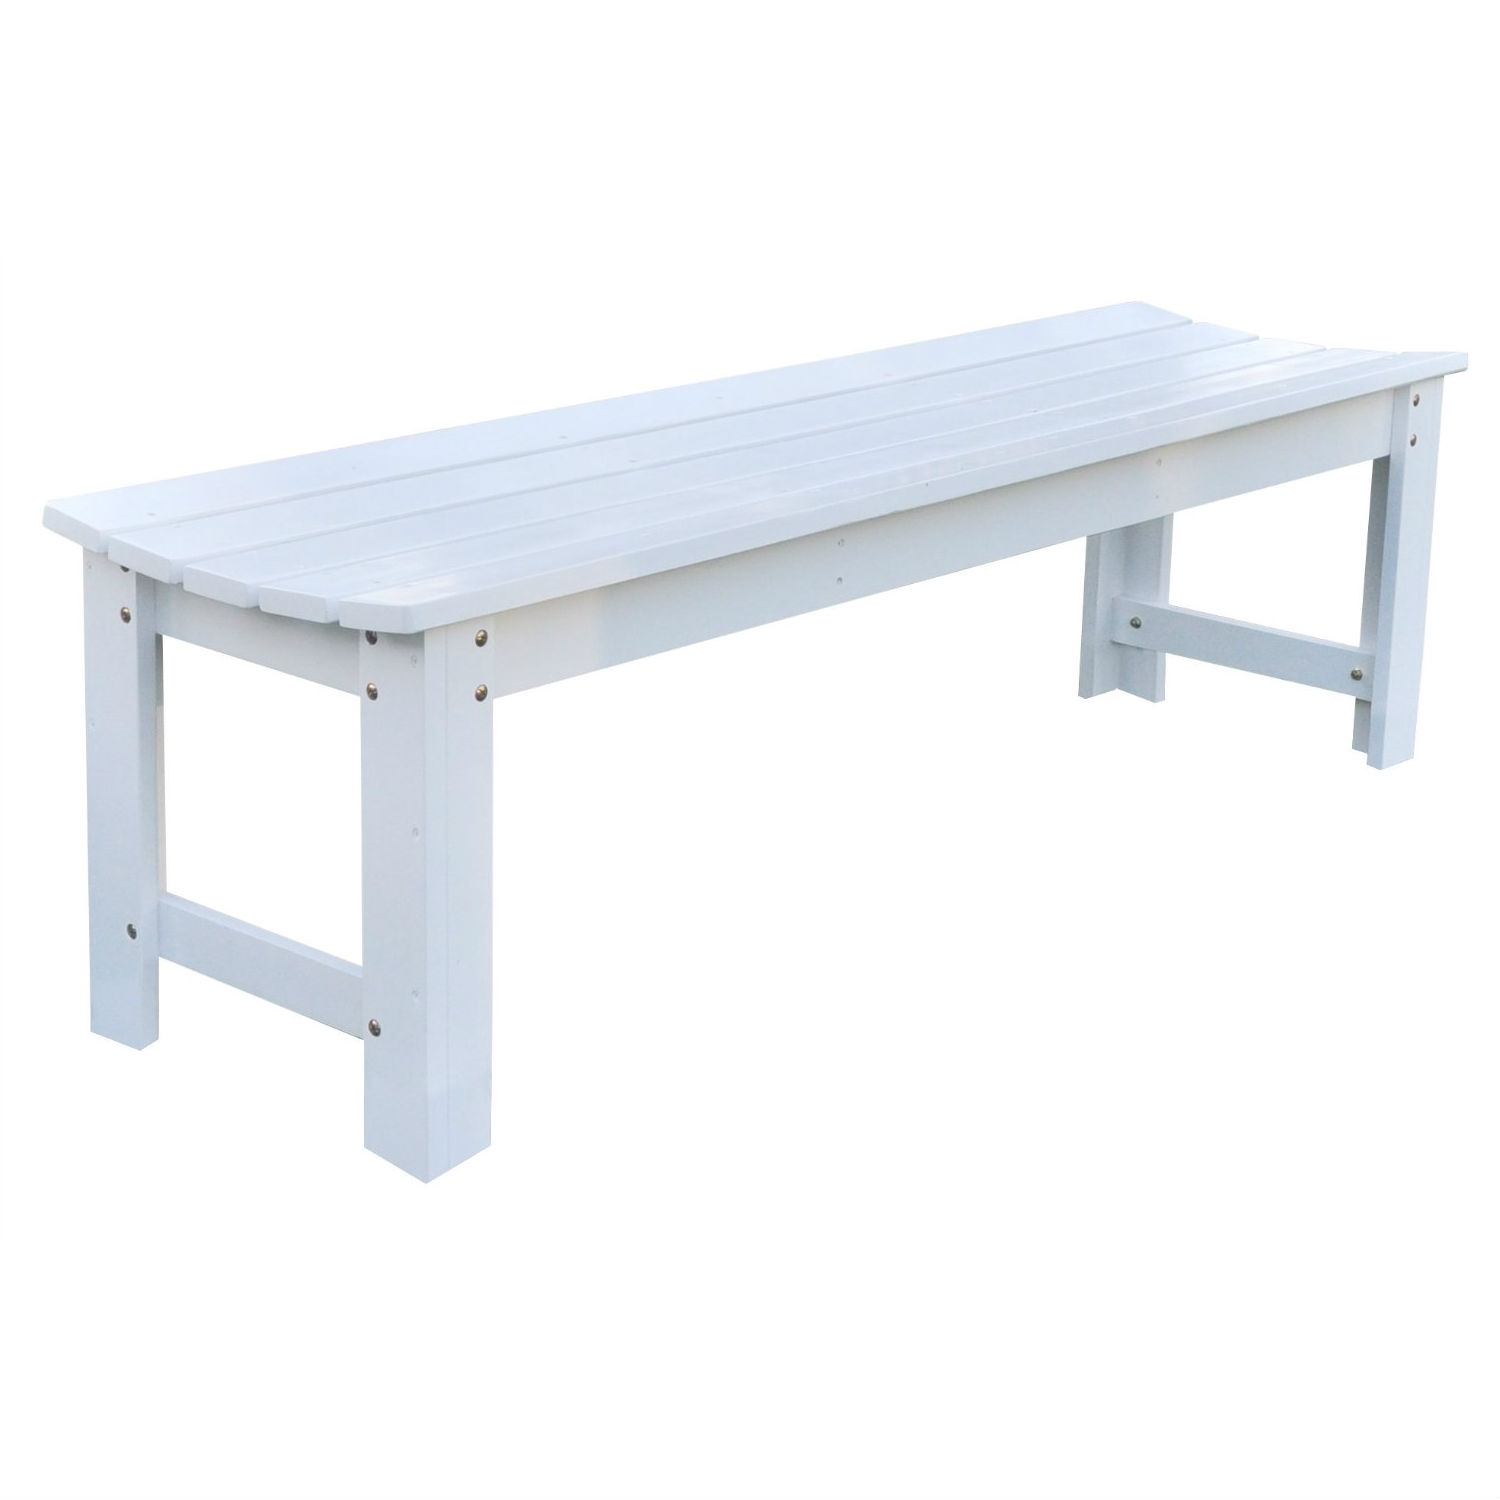 Astonishing 5 Ft Backless Outdoor Garden Bench In Cedar Wood White Ncnpc Chair Design For Home Ncnpcorg